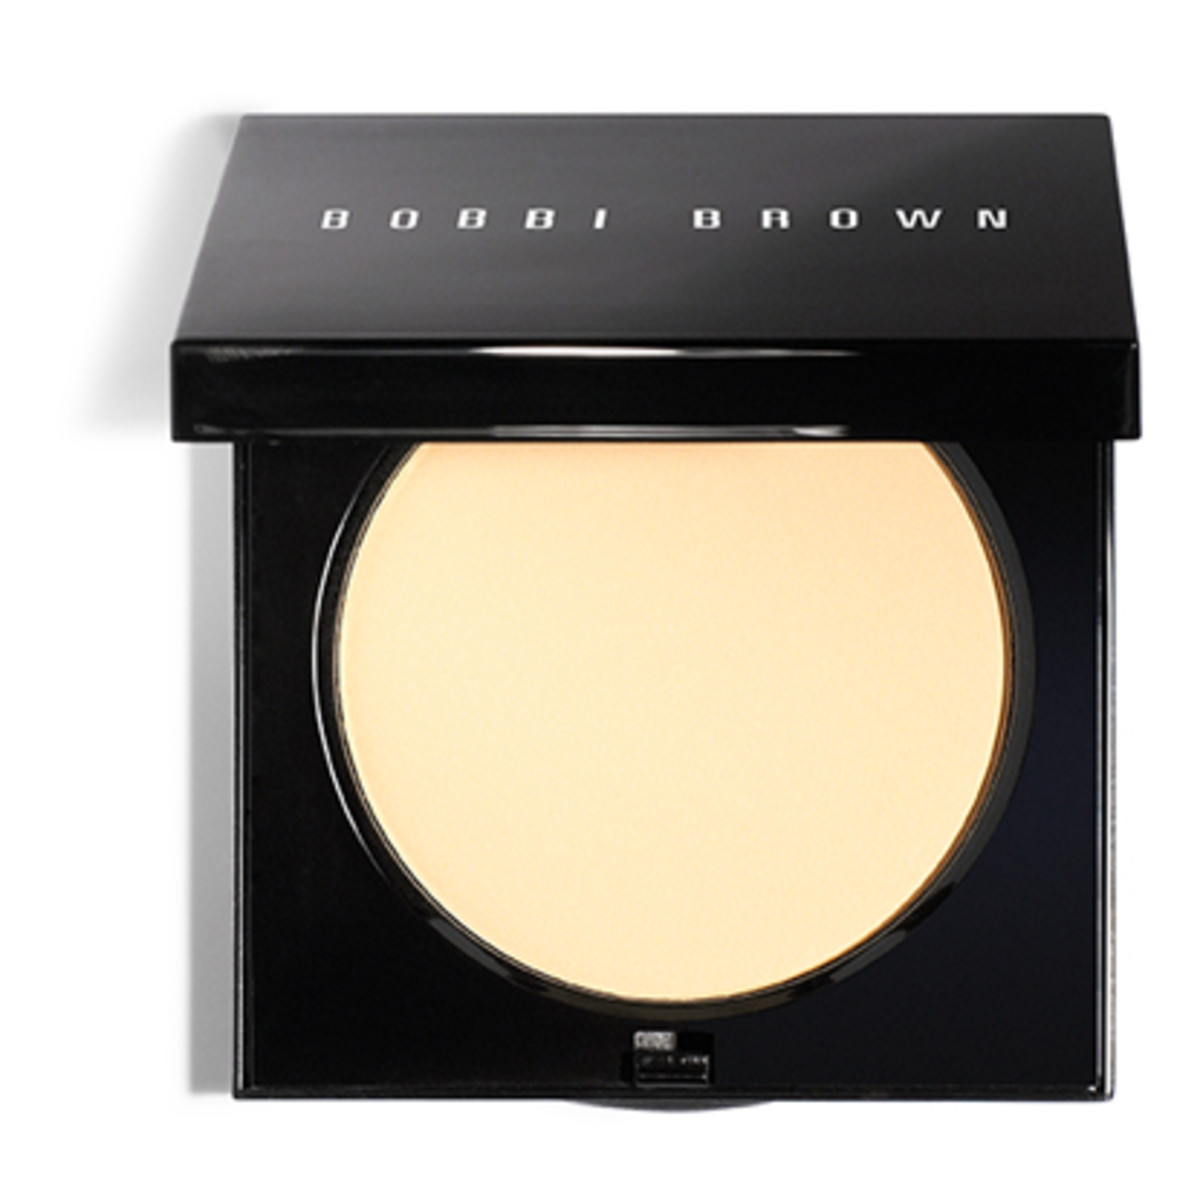 #7 Bobbi Brown Sheer Finish Pressed Powder.